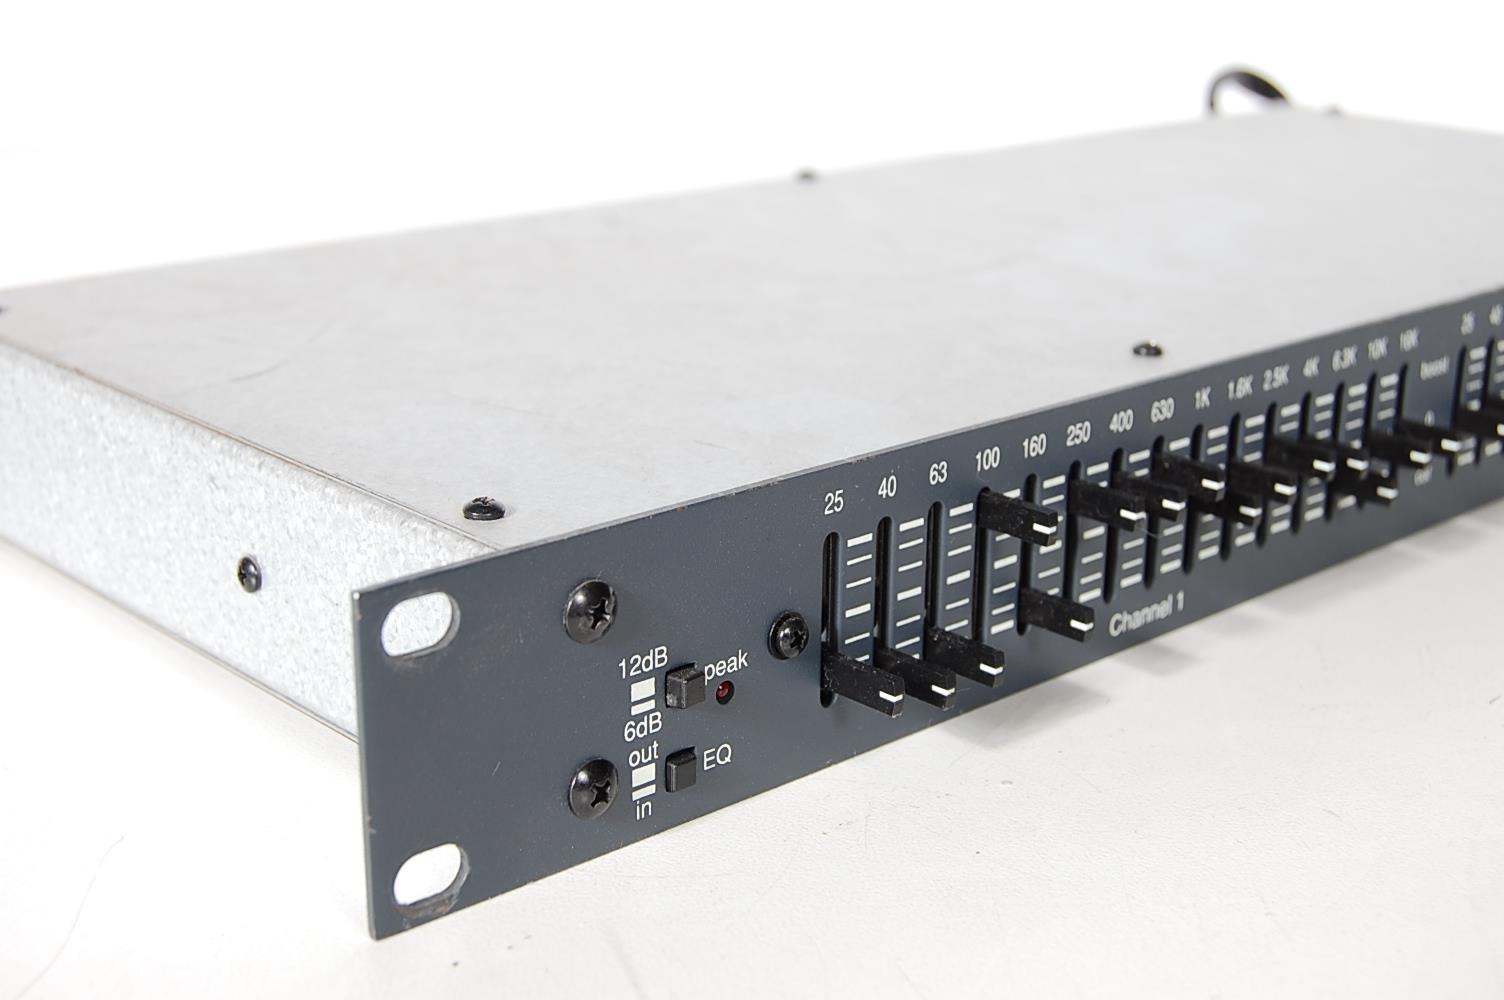 Details about BIAMP Advantage mEQ152 Rack Mount Professional Equalizer (No  Power Supply)